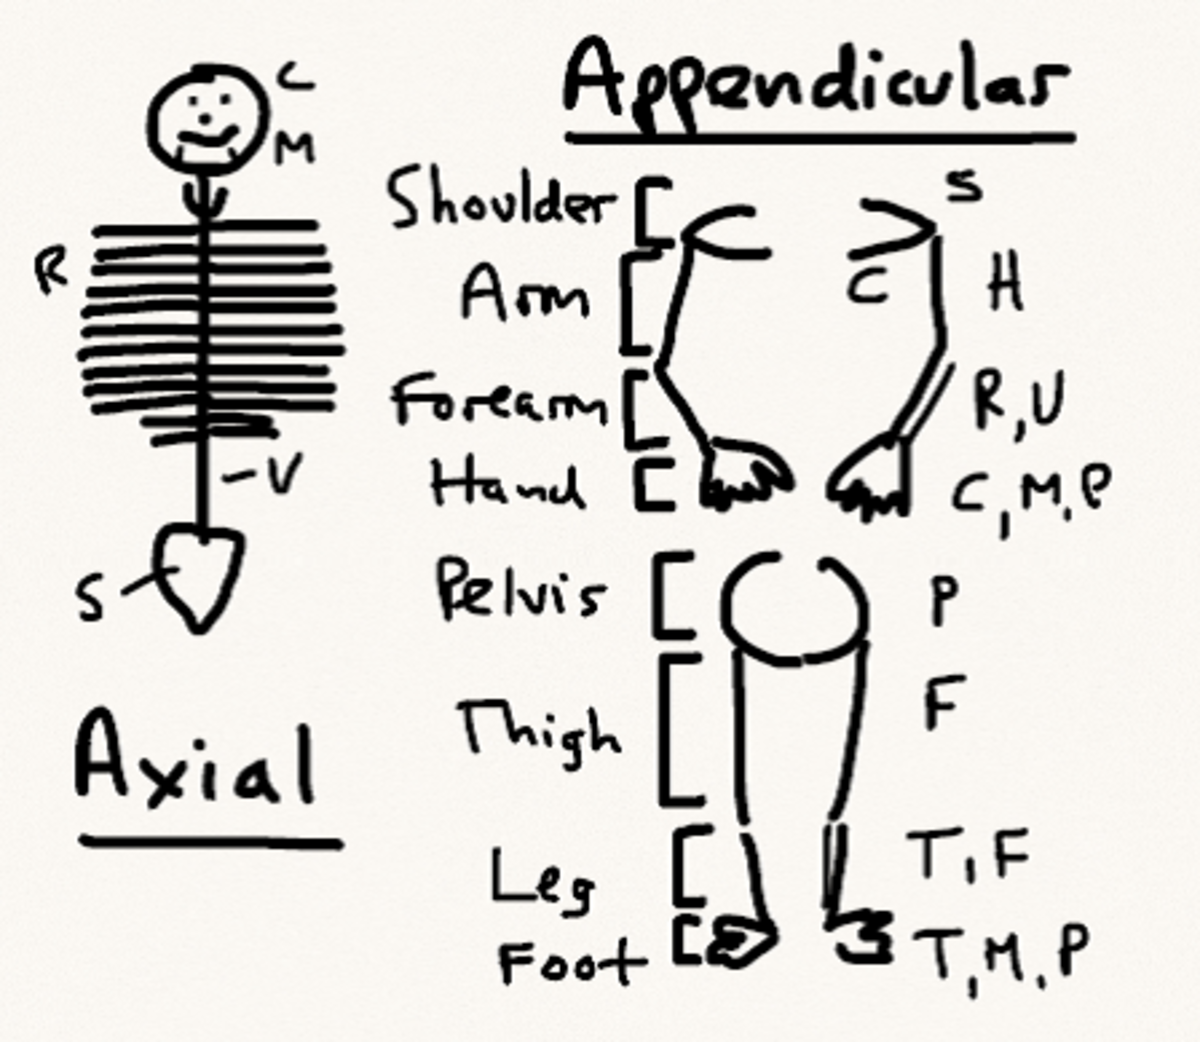 Schematic of the axial and appendicular skeleton